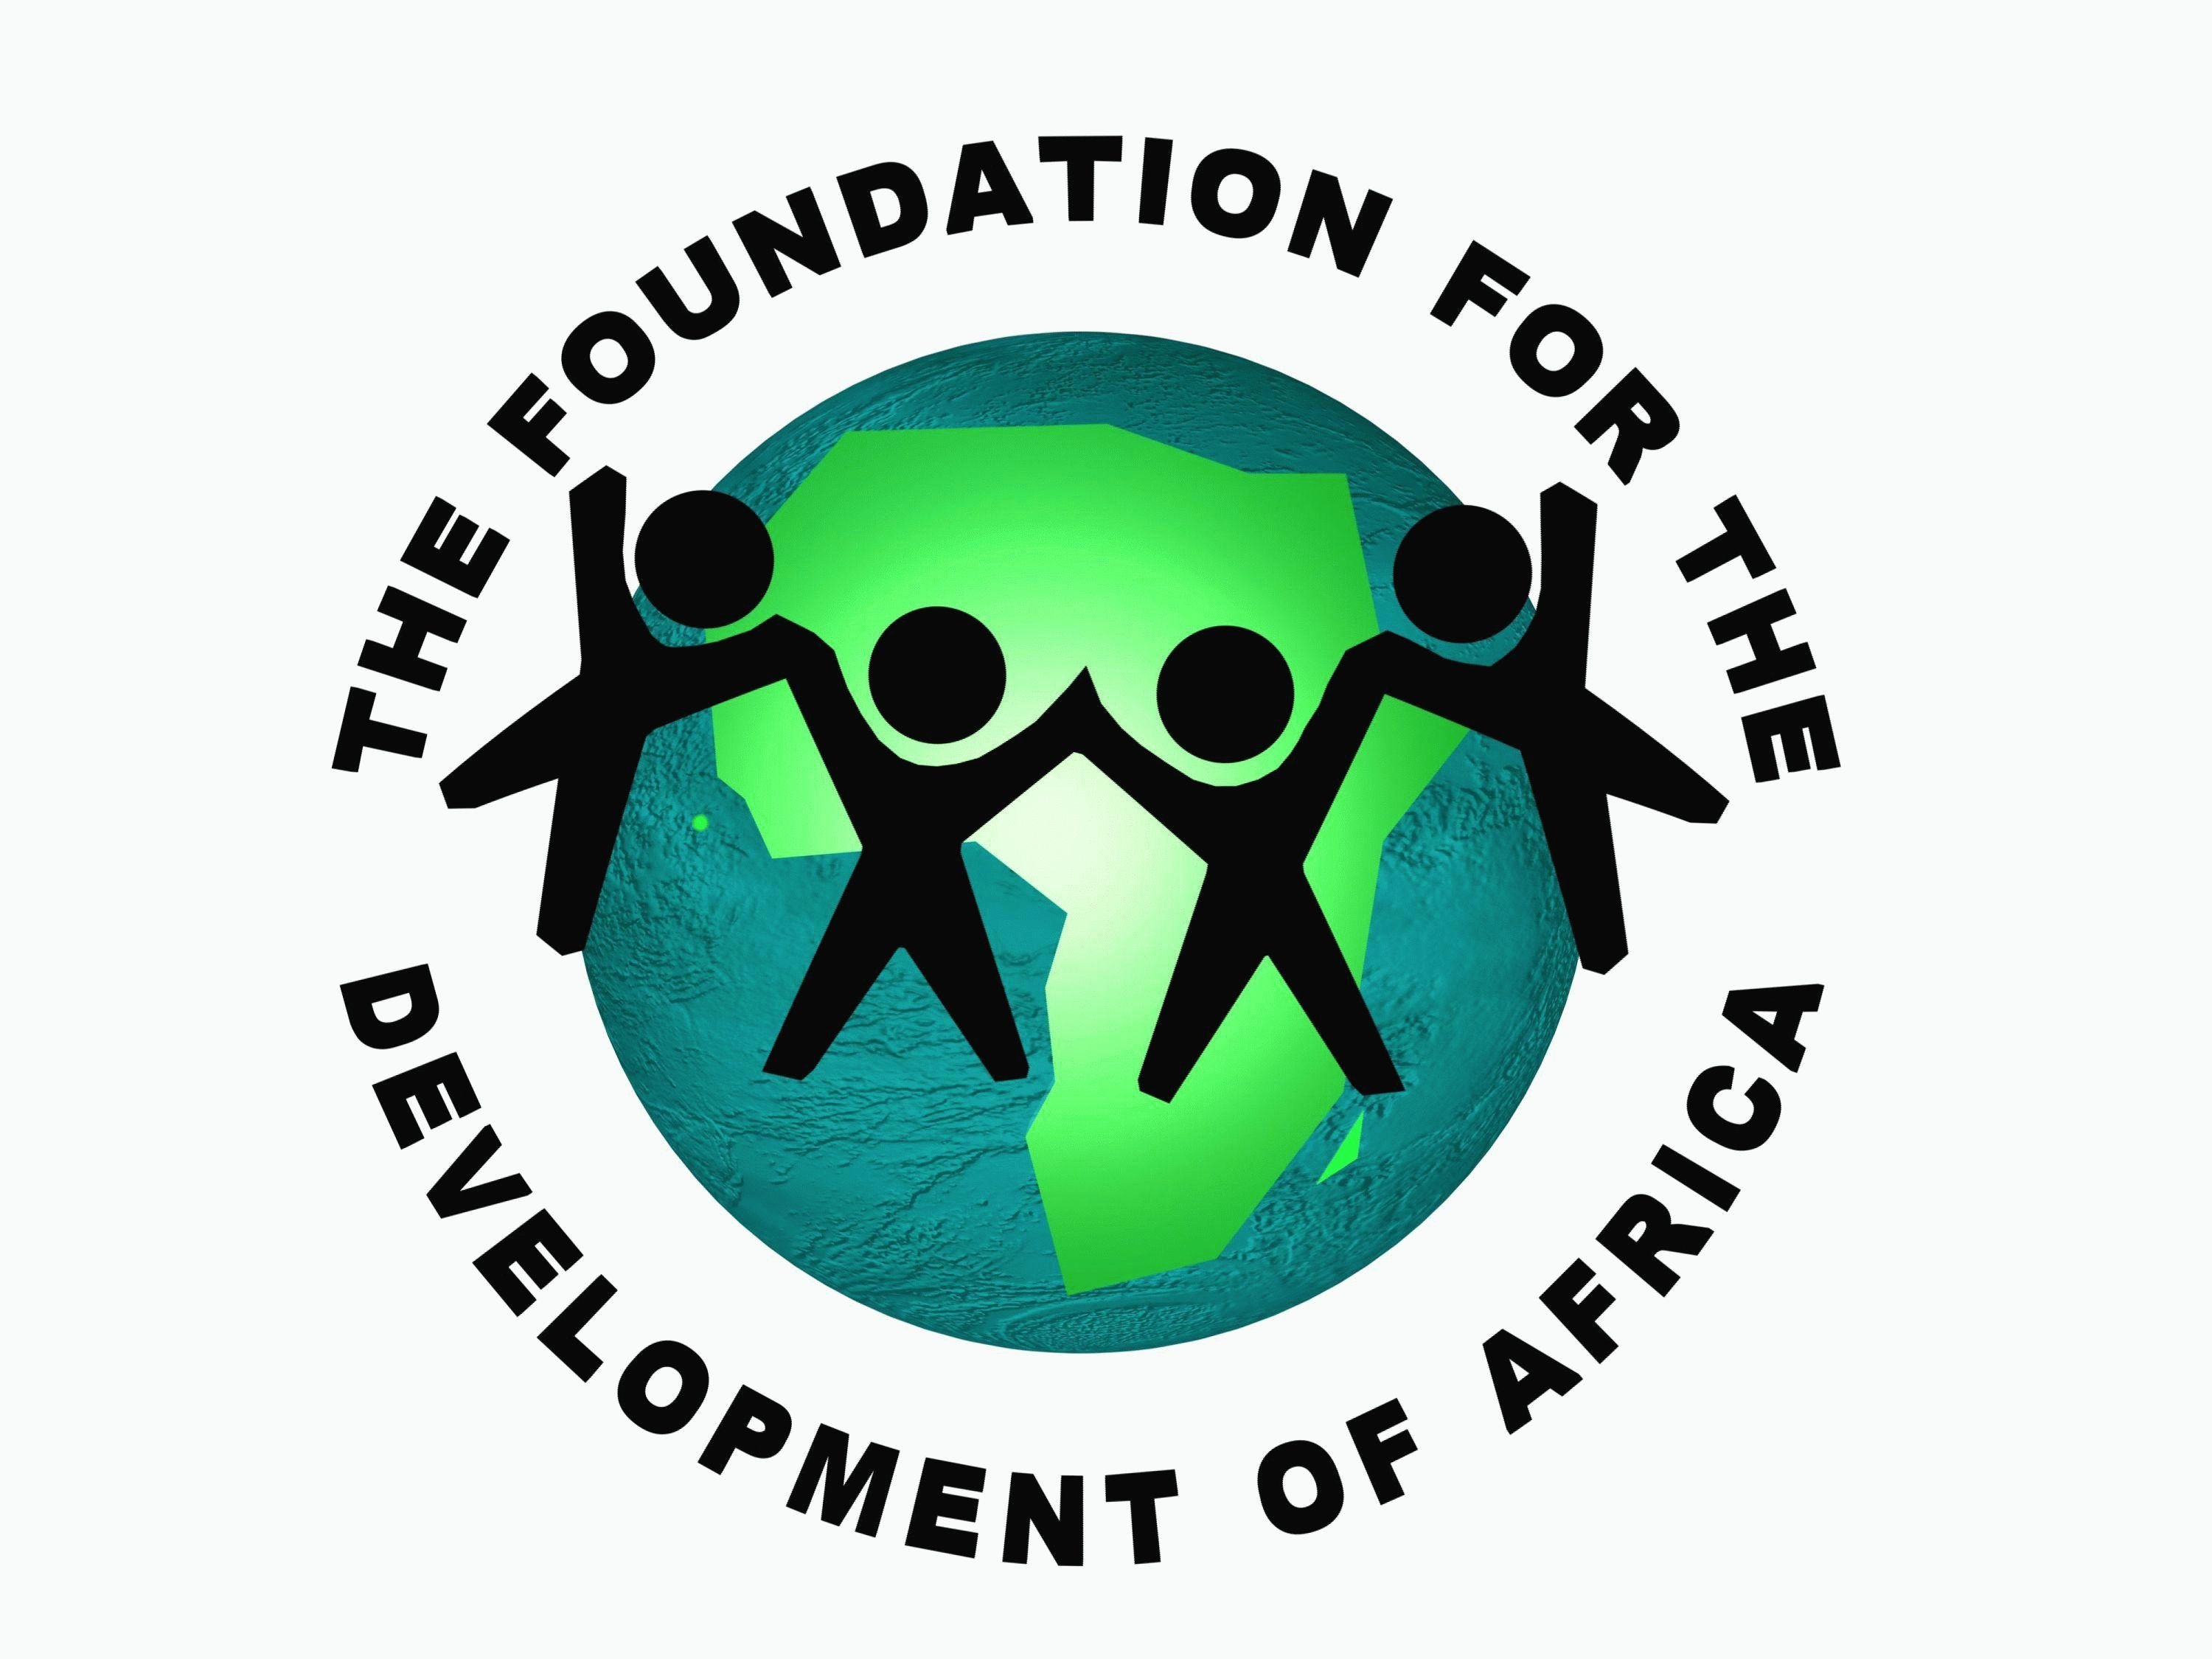 The Foundation for the Development of Africa (FDA)